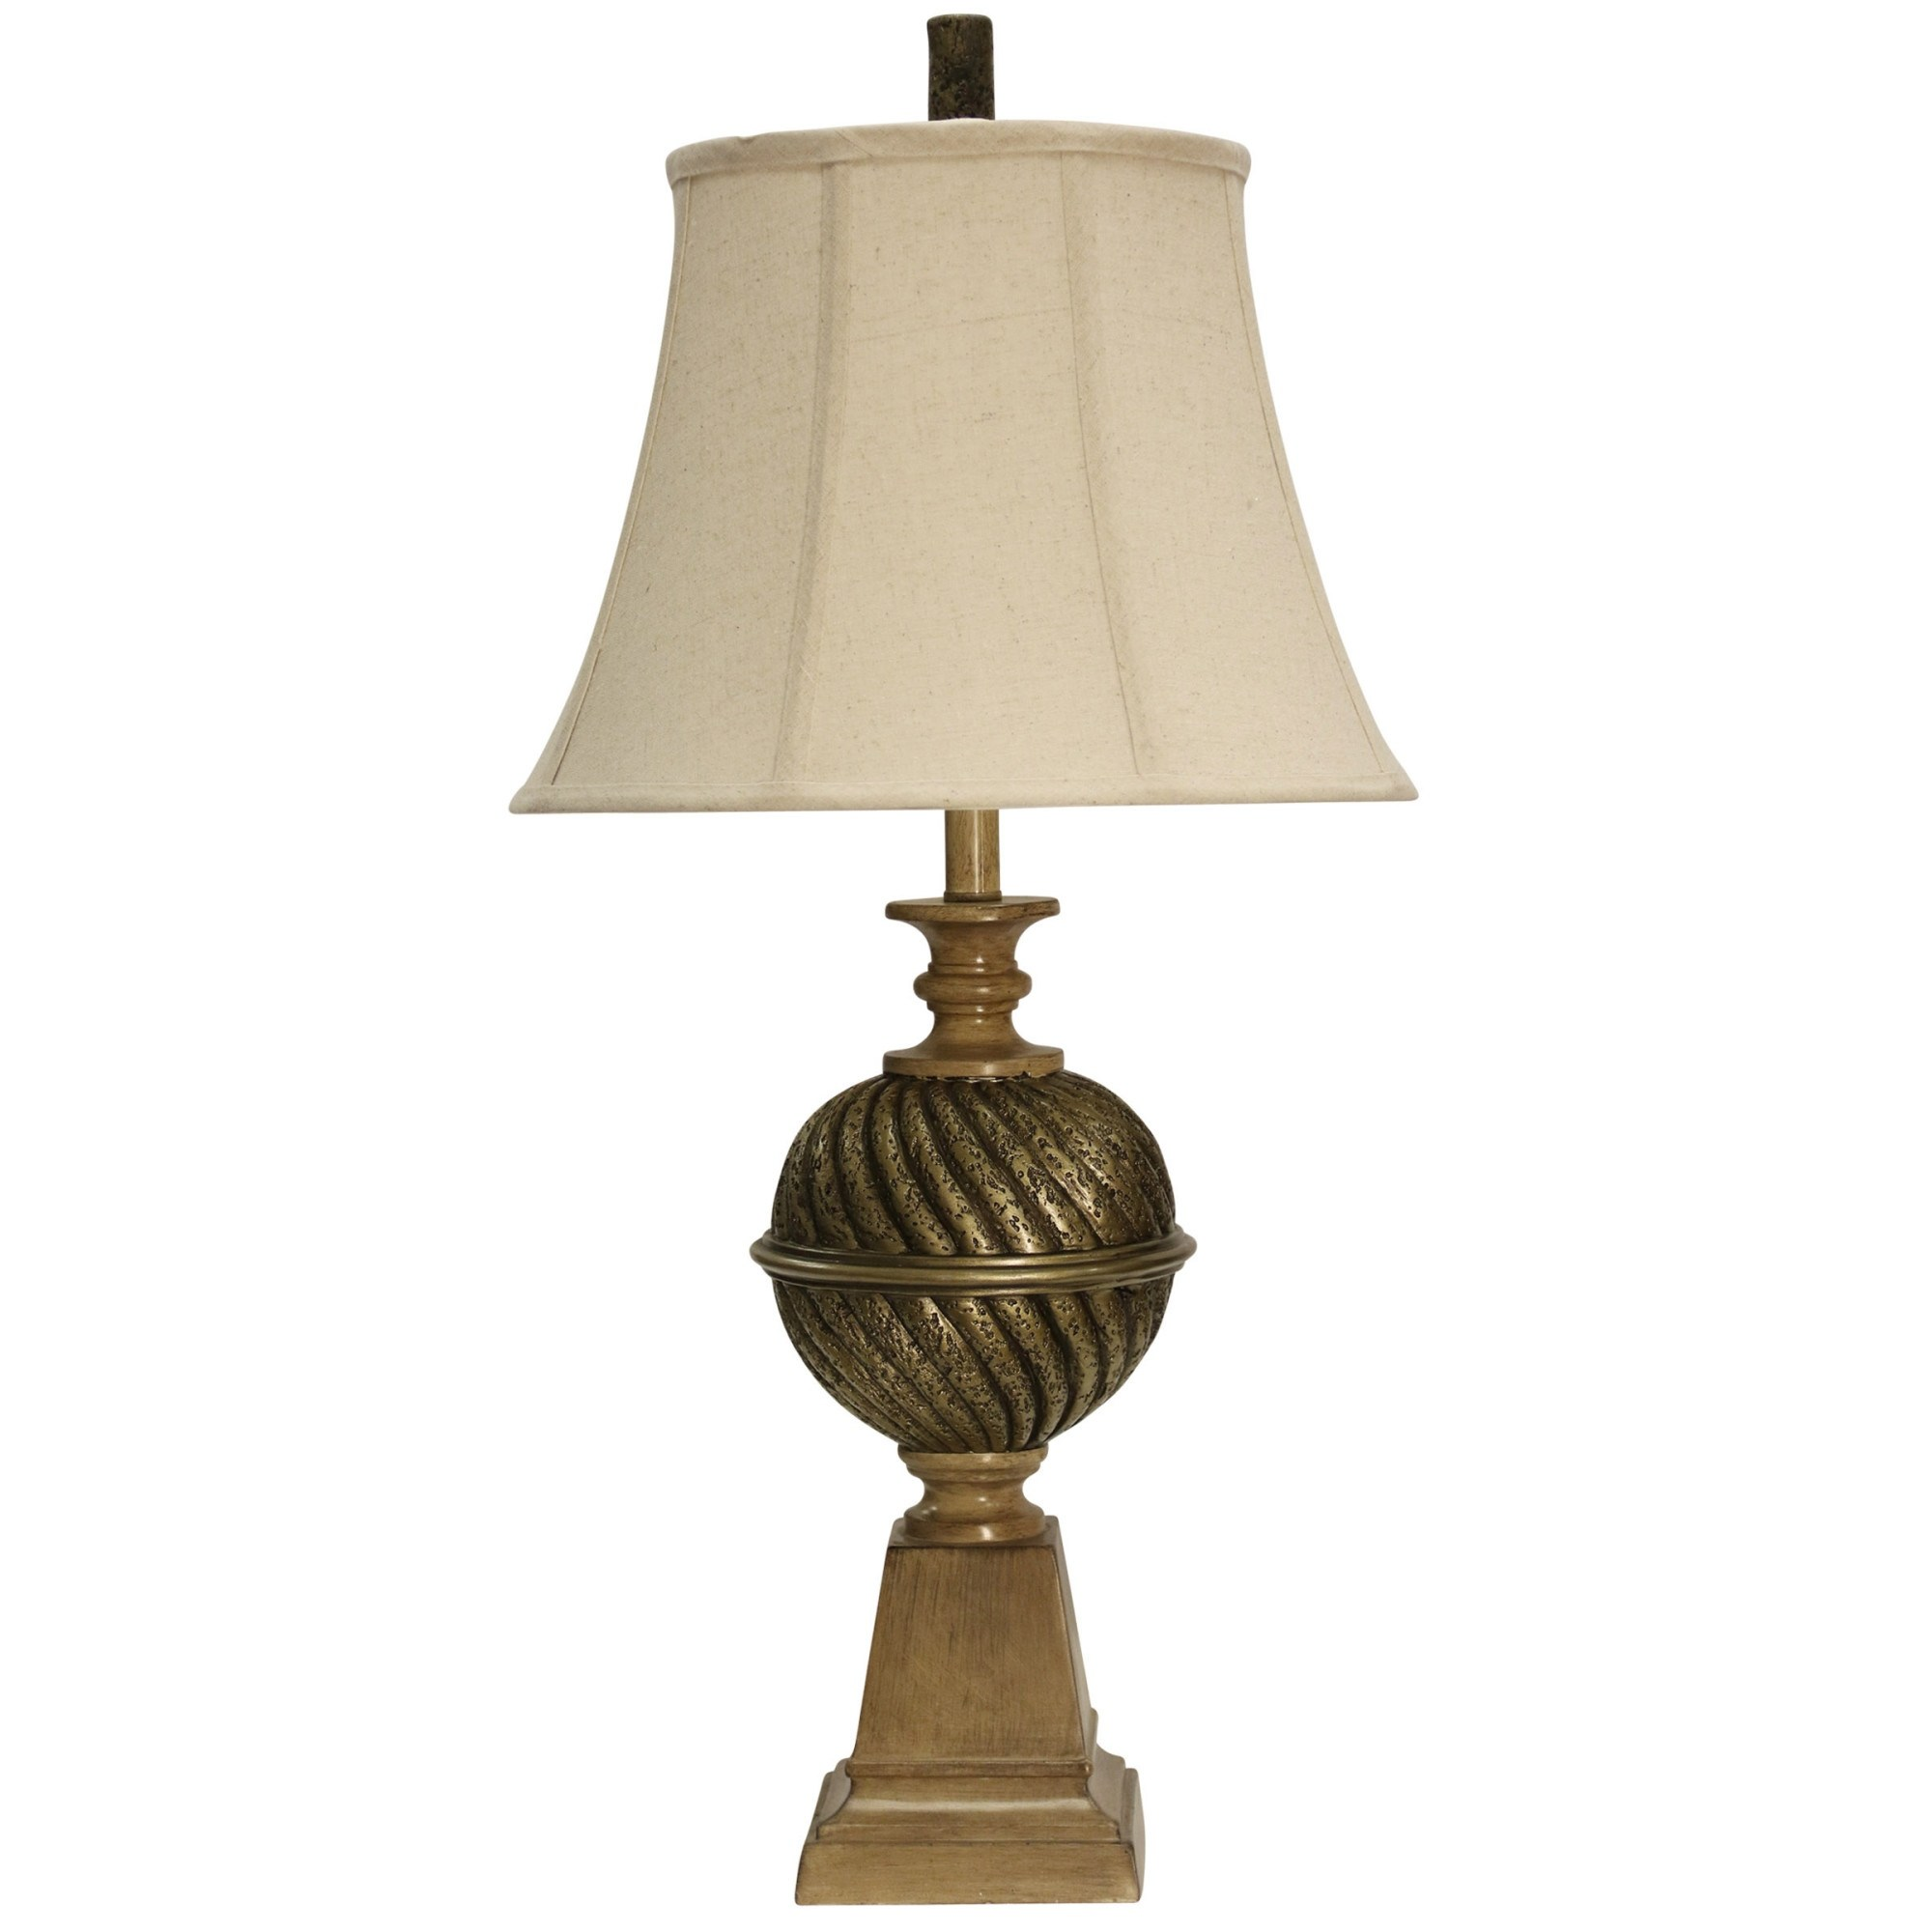 delacora tall accent table lamp with softback fabric shade lamps mumbai gold free shipping today old wooden light grey end tables sage paint dining behind couch yellow home decor